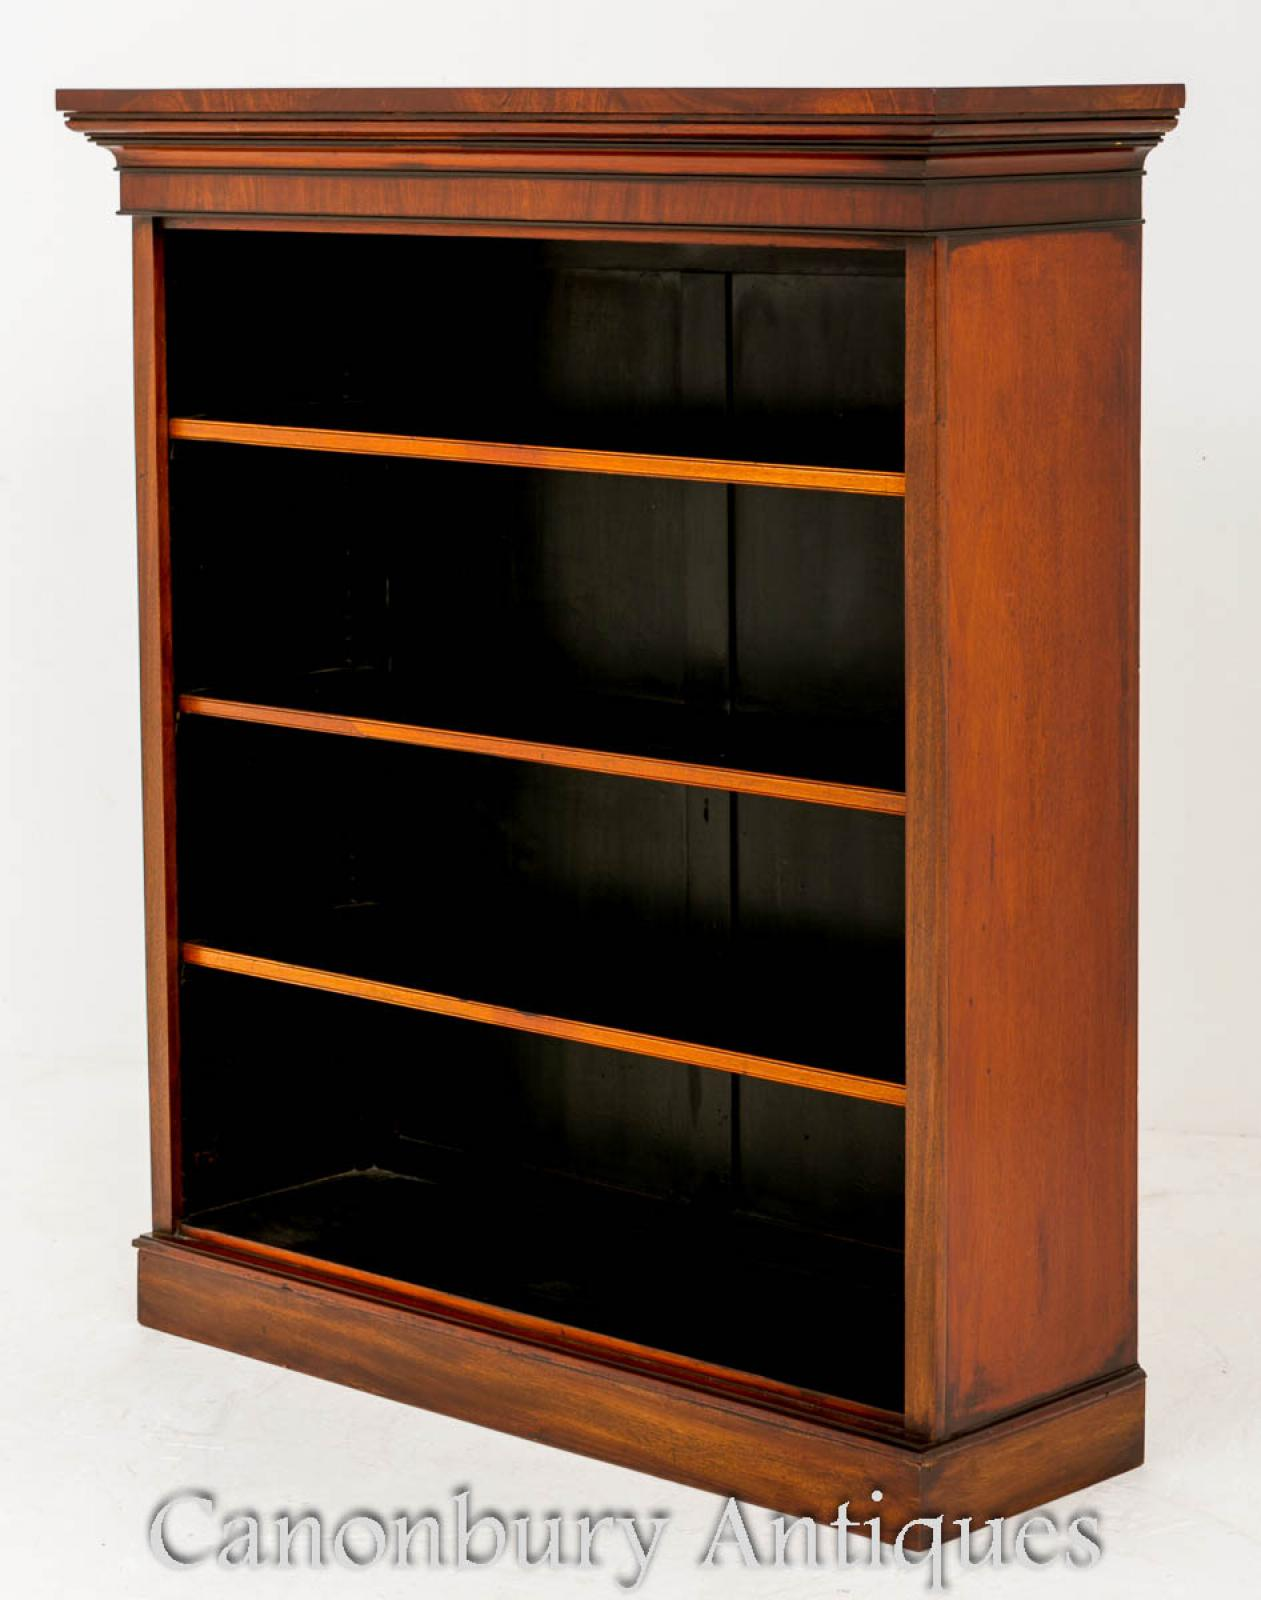 Details About Antique Mahogany Open Bookcase Openfront Circa 1860